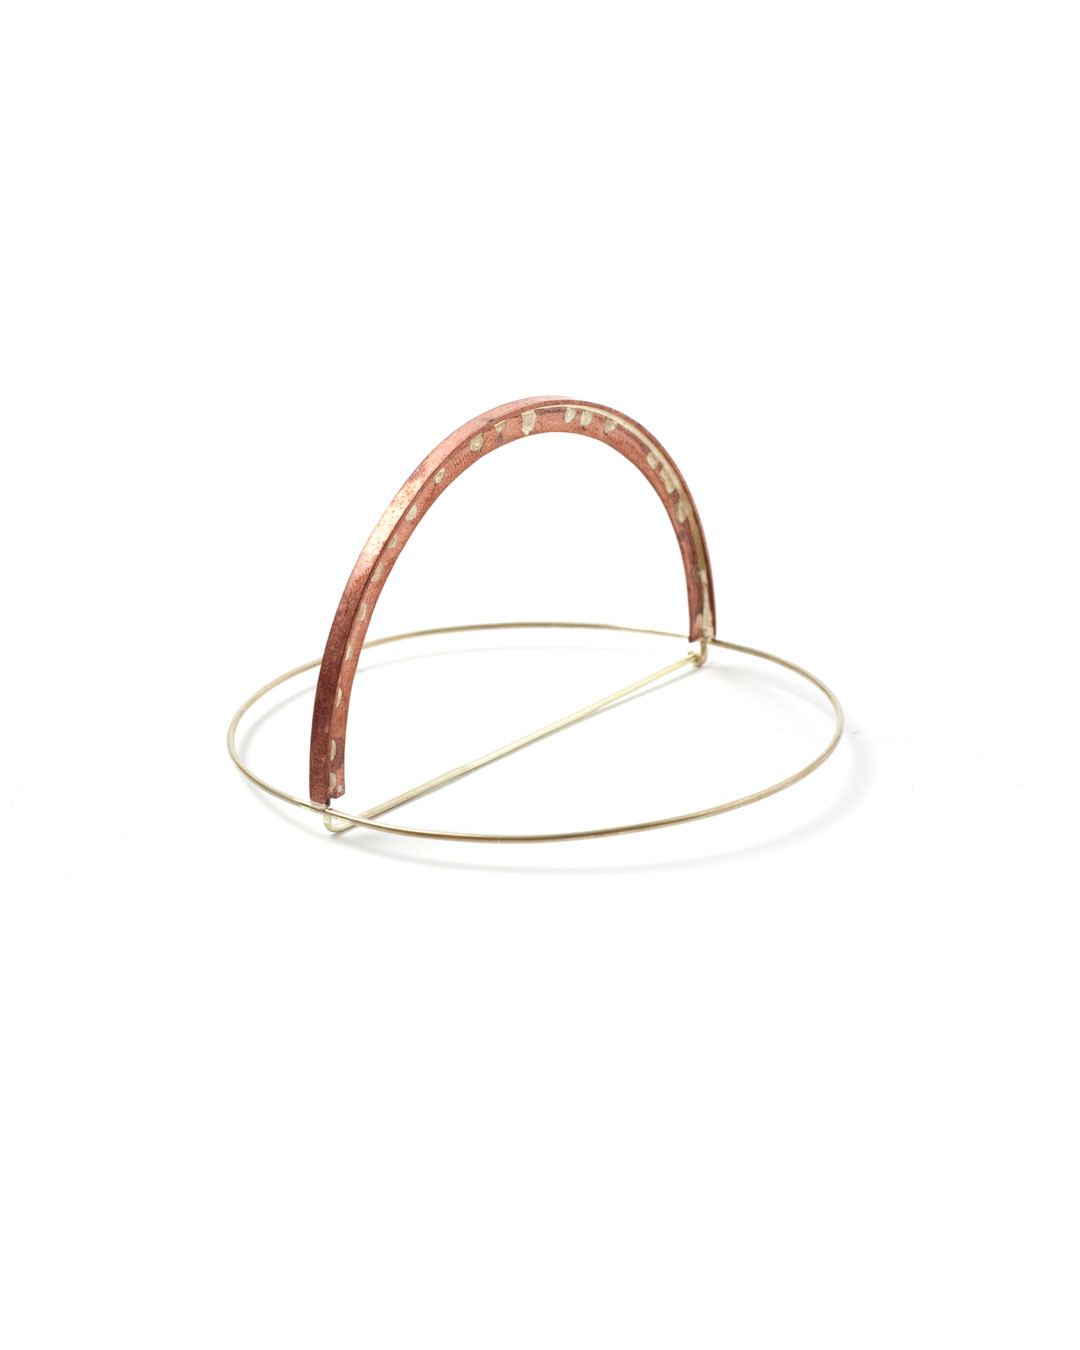 Florian Weichsberger, Sun #8, 2019, brooch; copper, 14ct gold, 75 x 75 x 38 mm, €1335